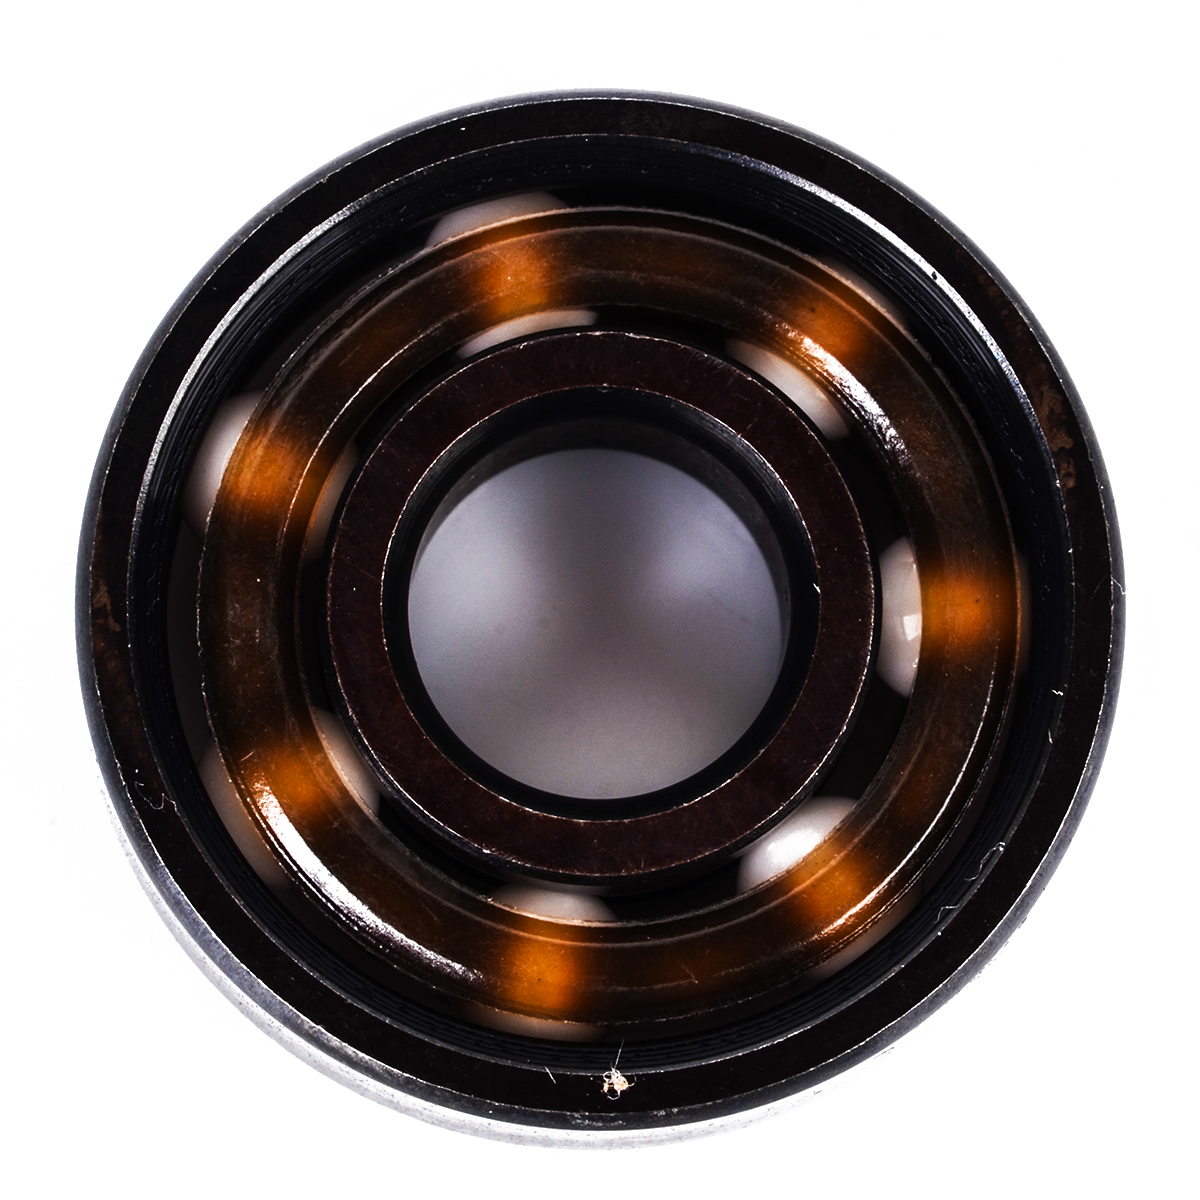 1 Piece New Smooth Moving Mayitr Skateboard Bearings Ceramic Inline Speed 608 Ball Bearing For Finger Spinner Skateboard 4pcs new for ball uff bes m18mg noc80b s04g